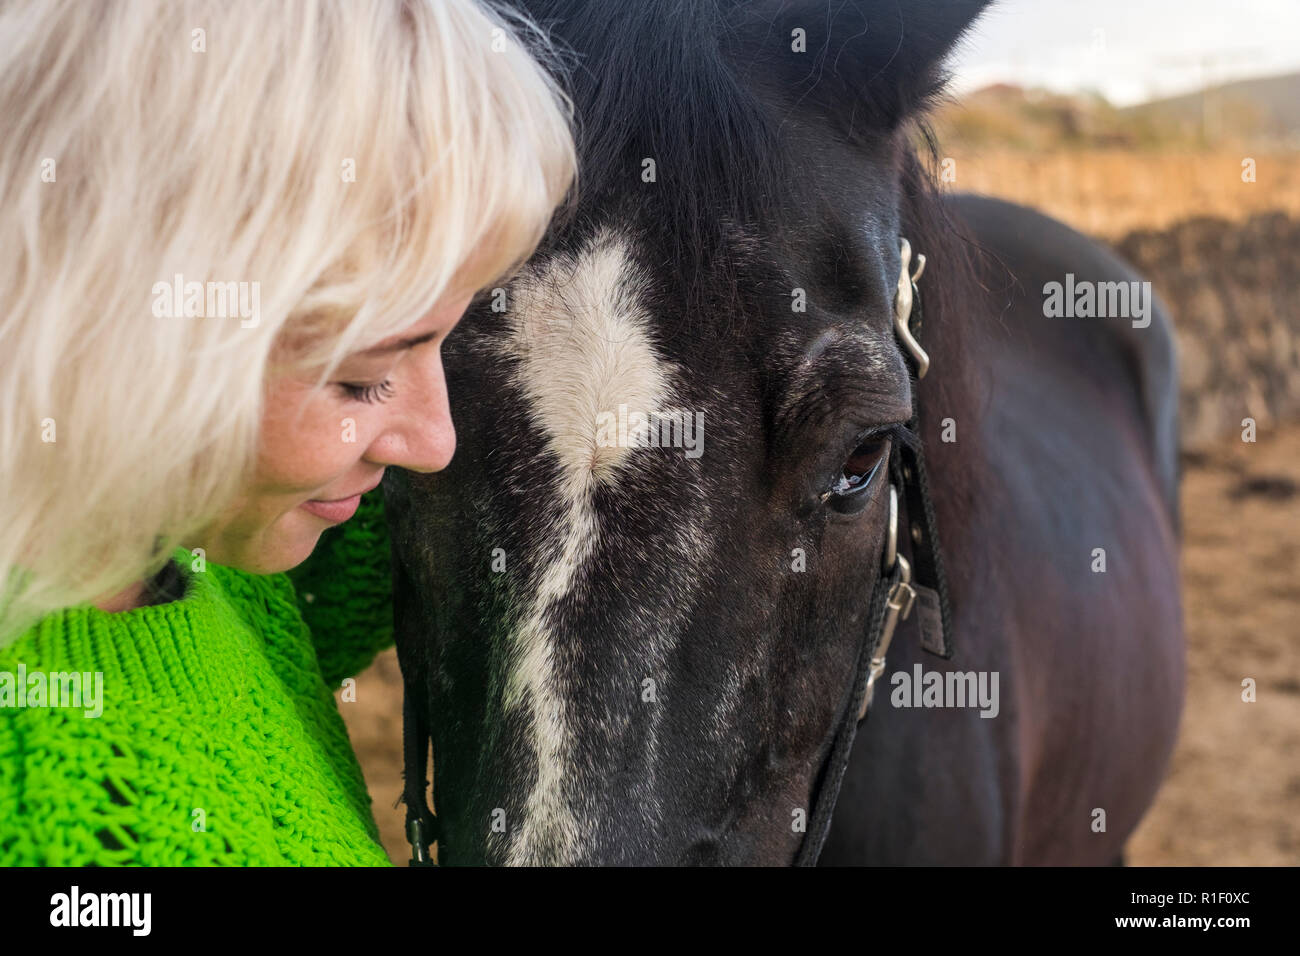 Lovely Horse High Resolution Stock Photography And Images Alamy